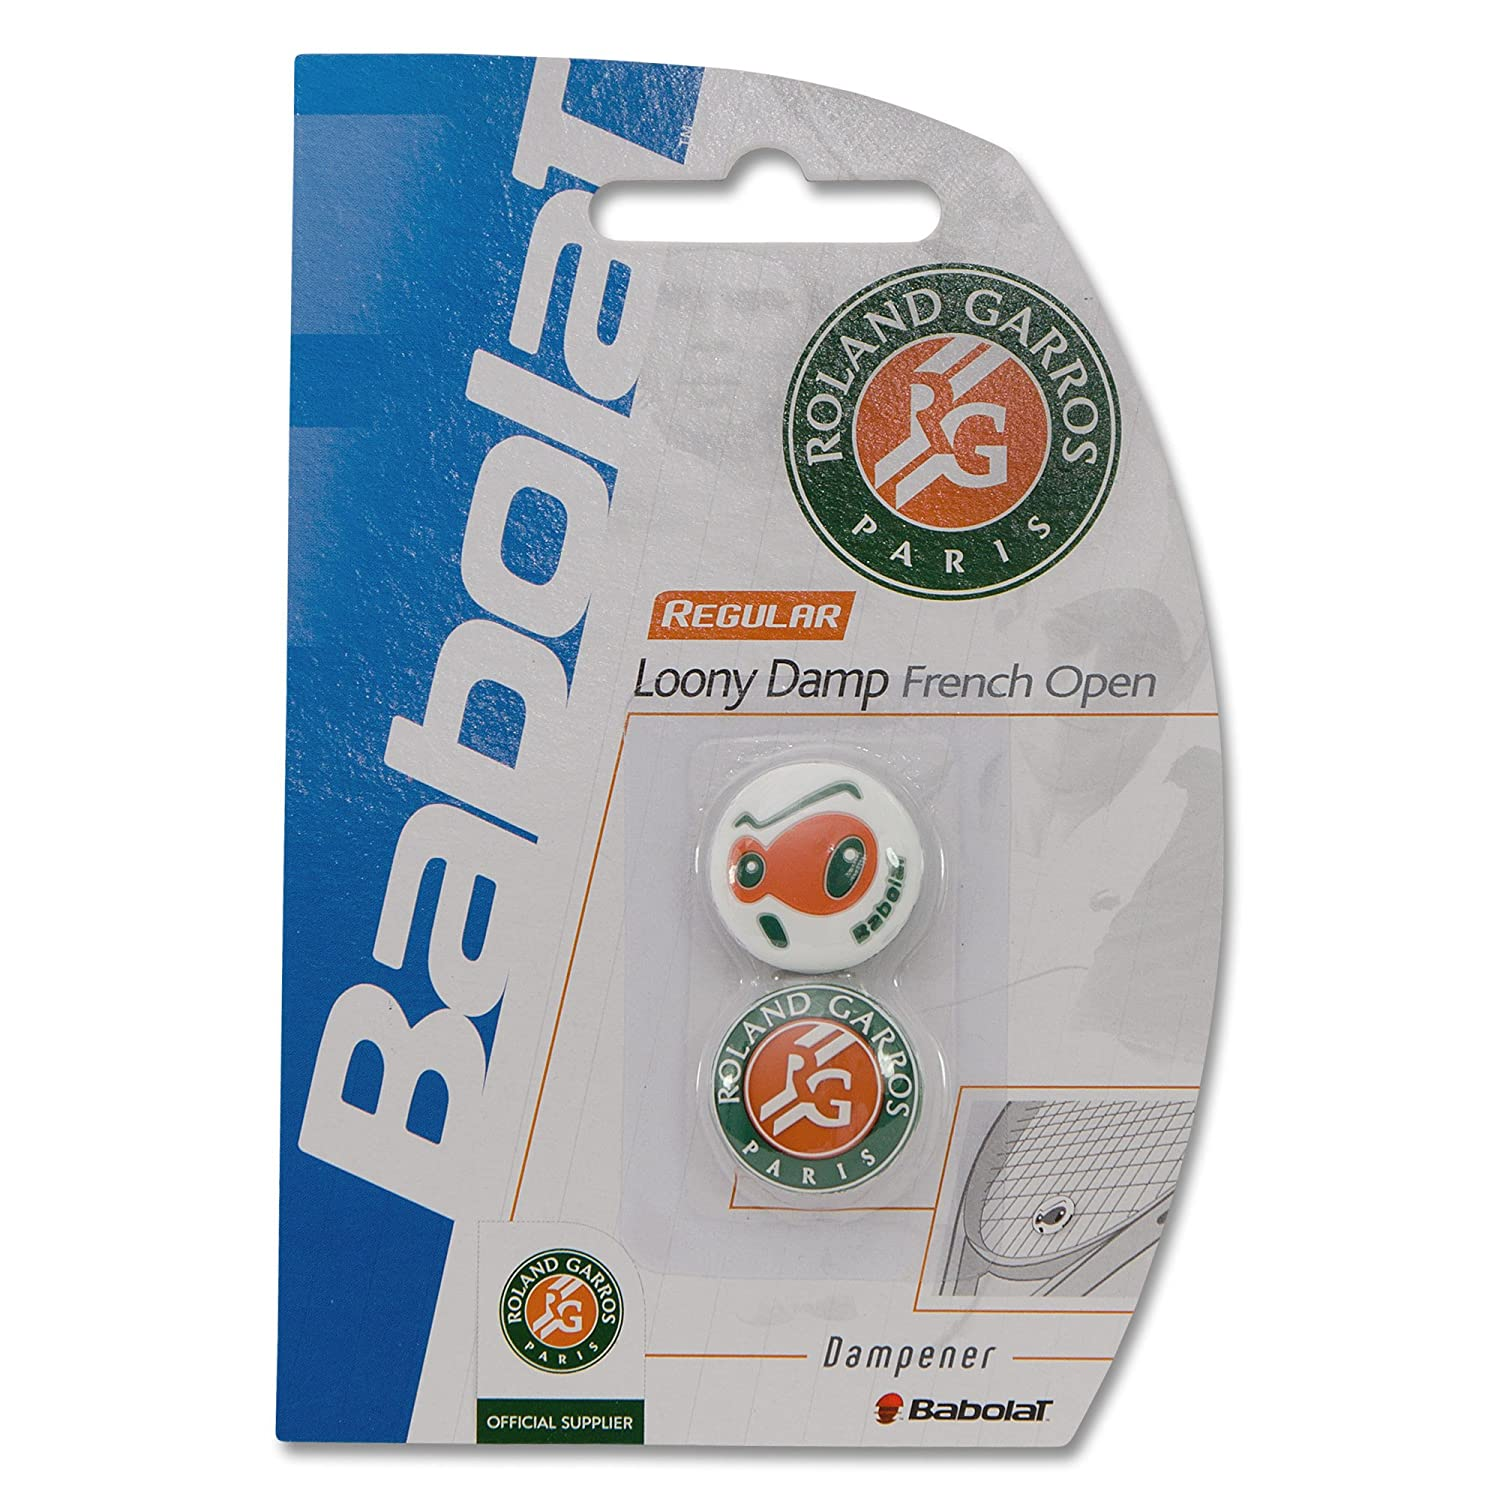 Babolat Loony Damp French Open Vibration Dampeners 2 Pack